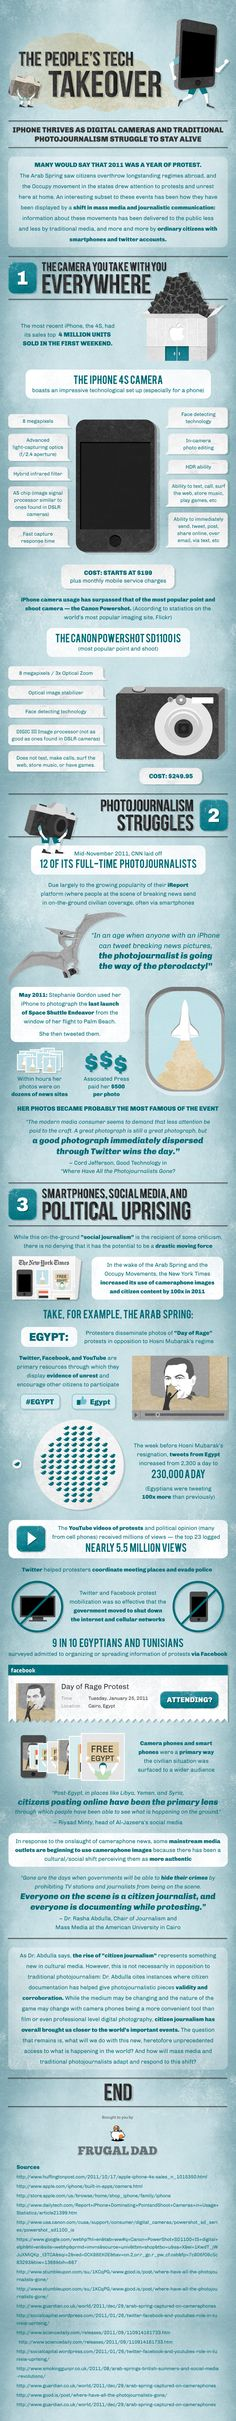 Social Media, iPhones, and (Perhaps)The Death of Photo Journalism - Infographic